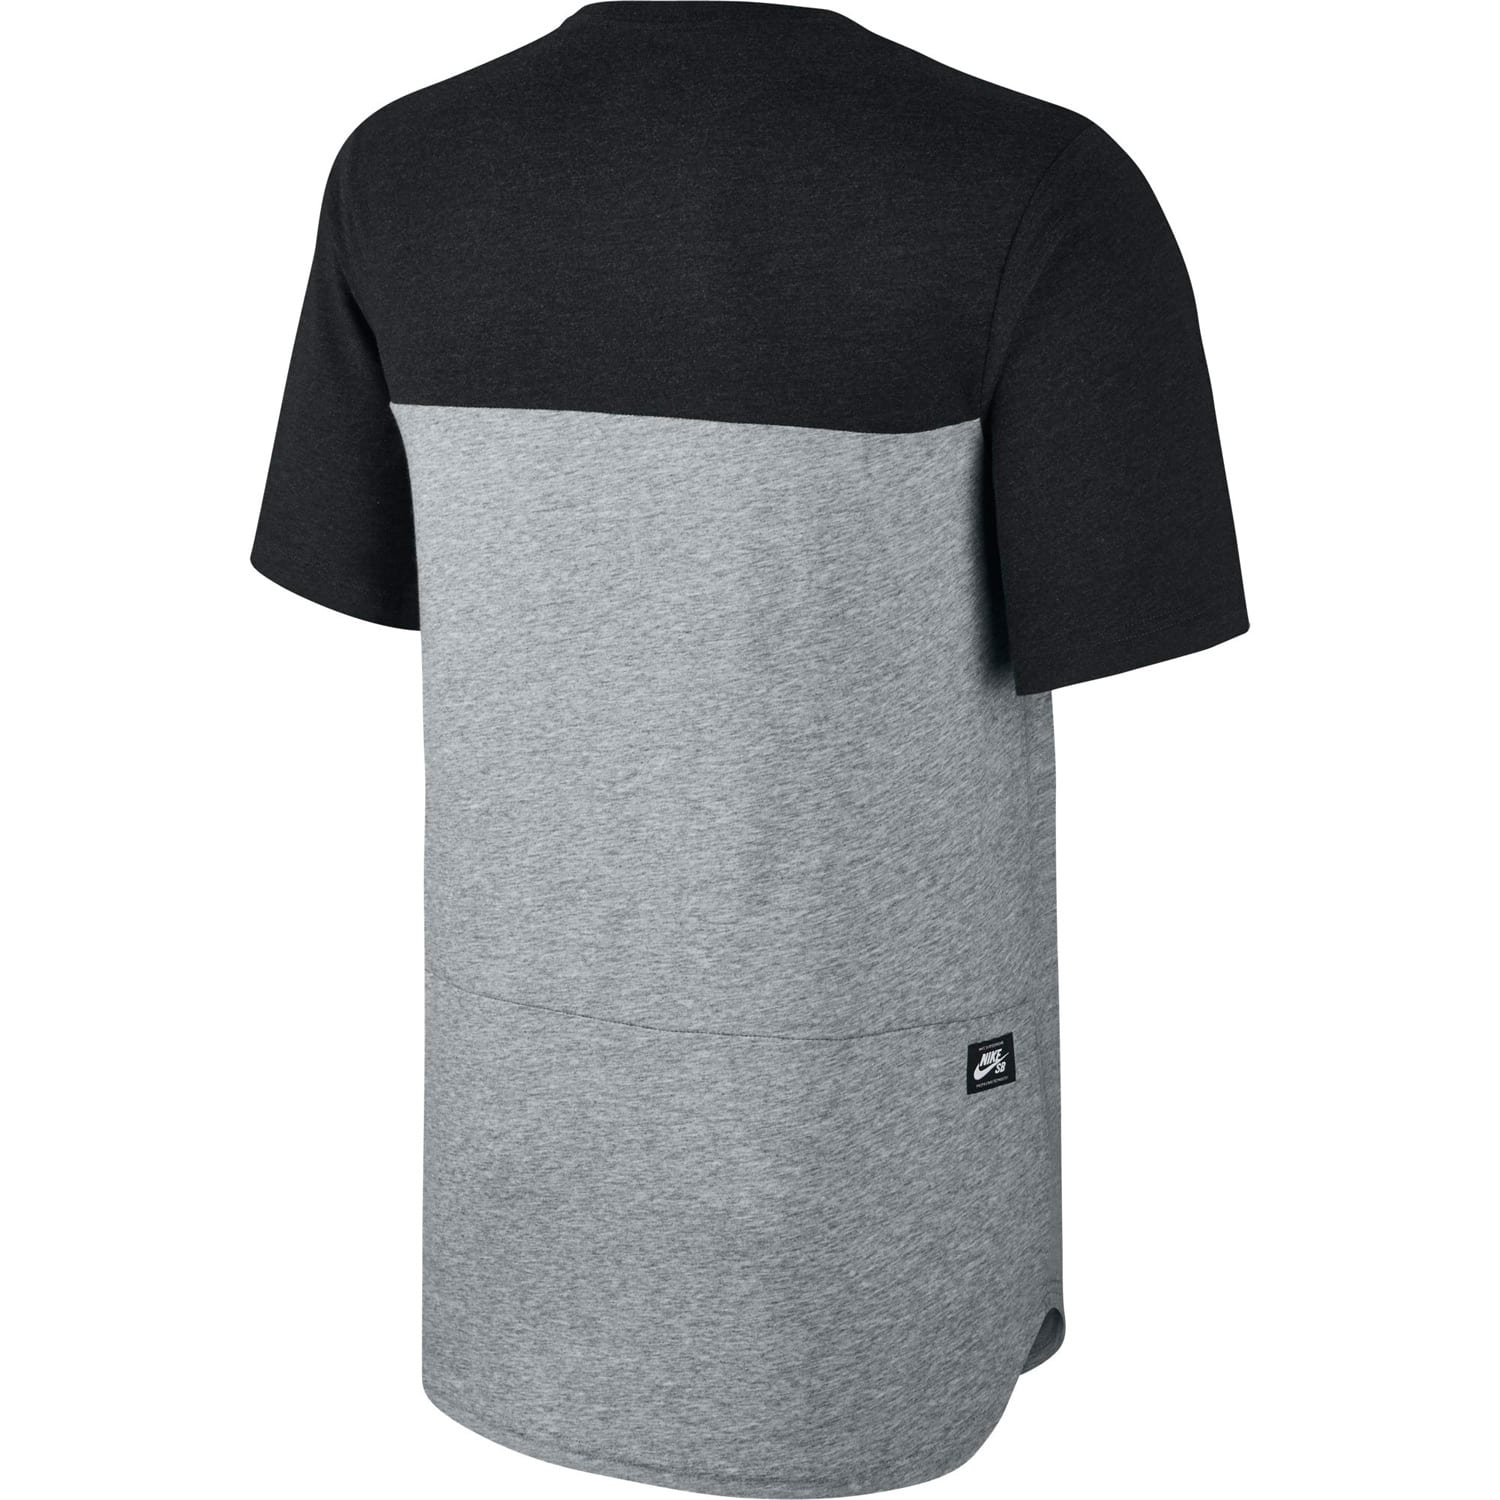 On sale nike sb dri fit blocked pocket t shirt up to 45 off for Dri fit shirts on sale